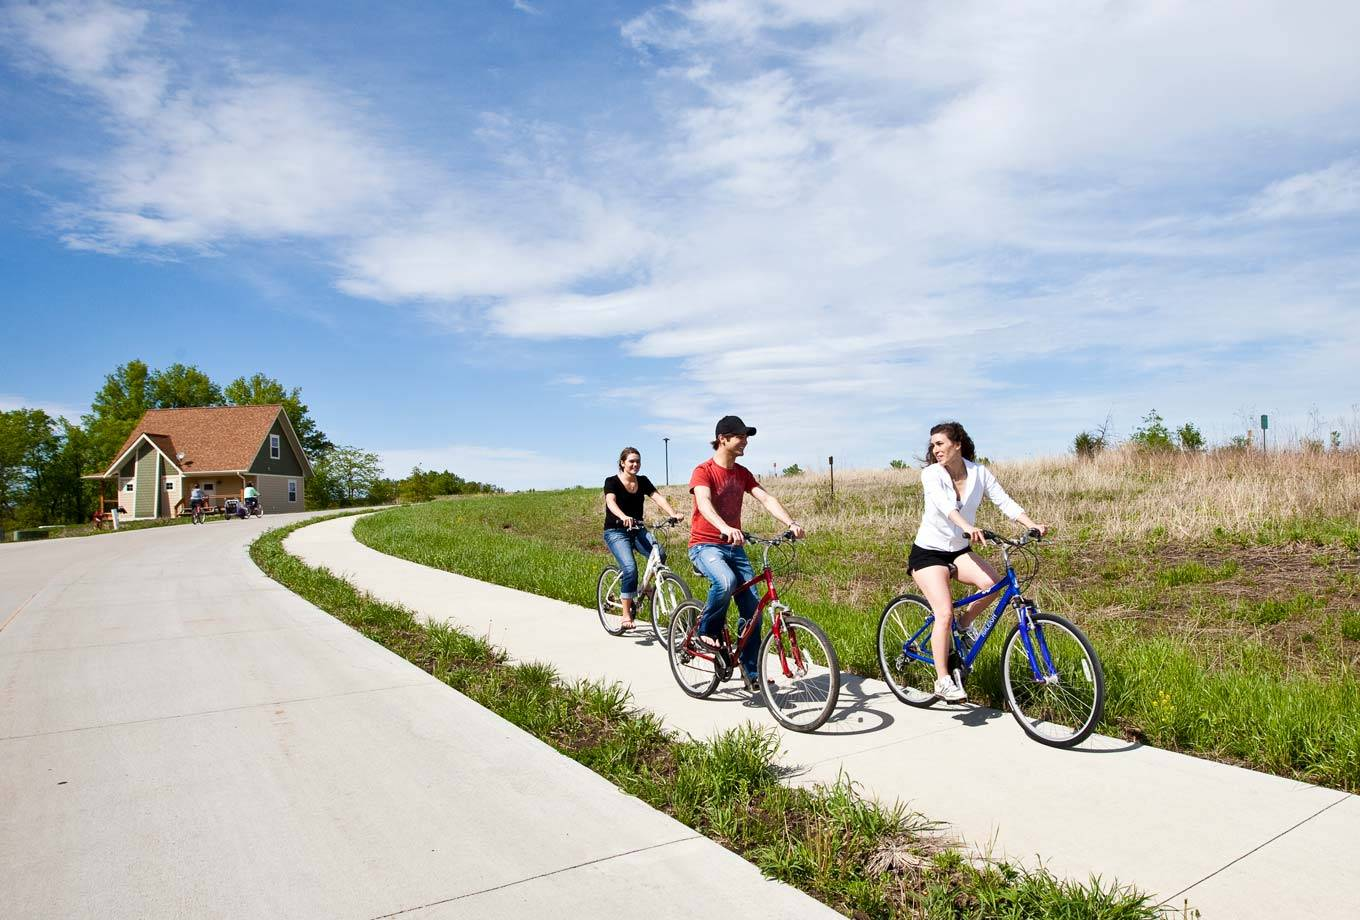 Biking on the trails in front of a cottage at Honey Creek Resort with rental bikes